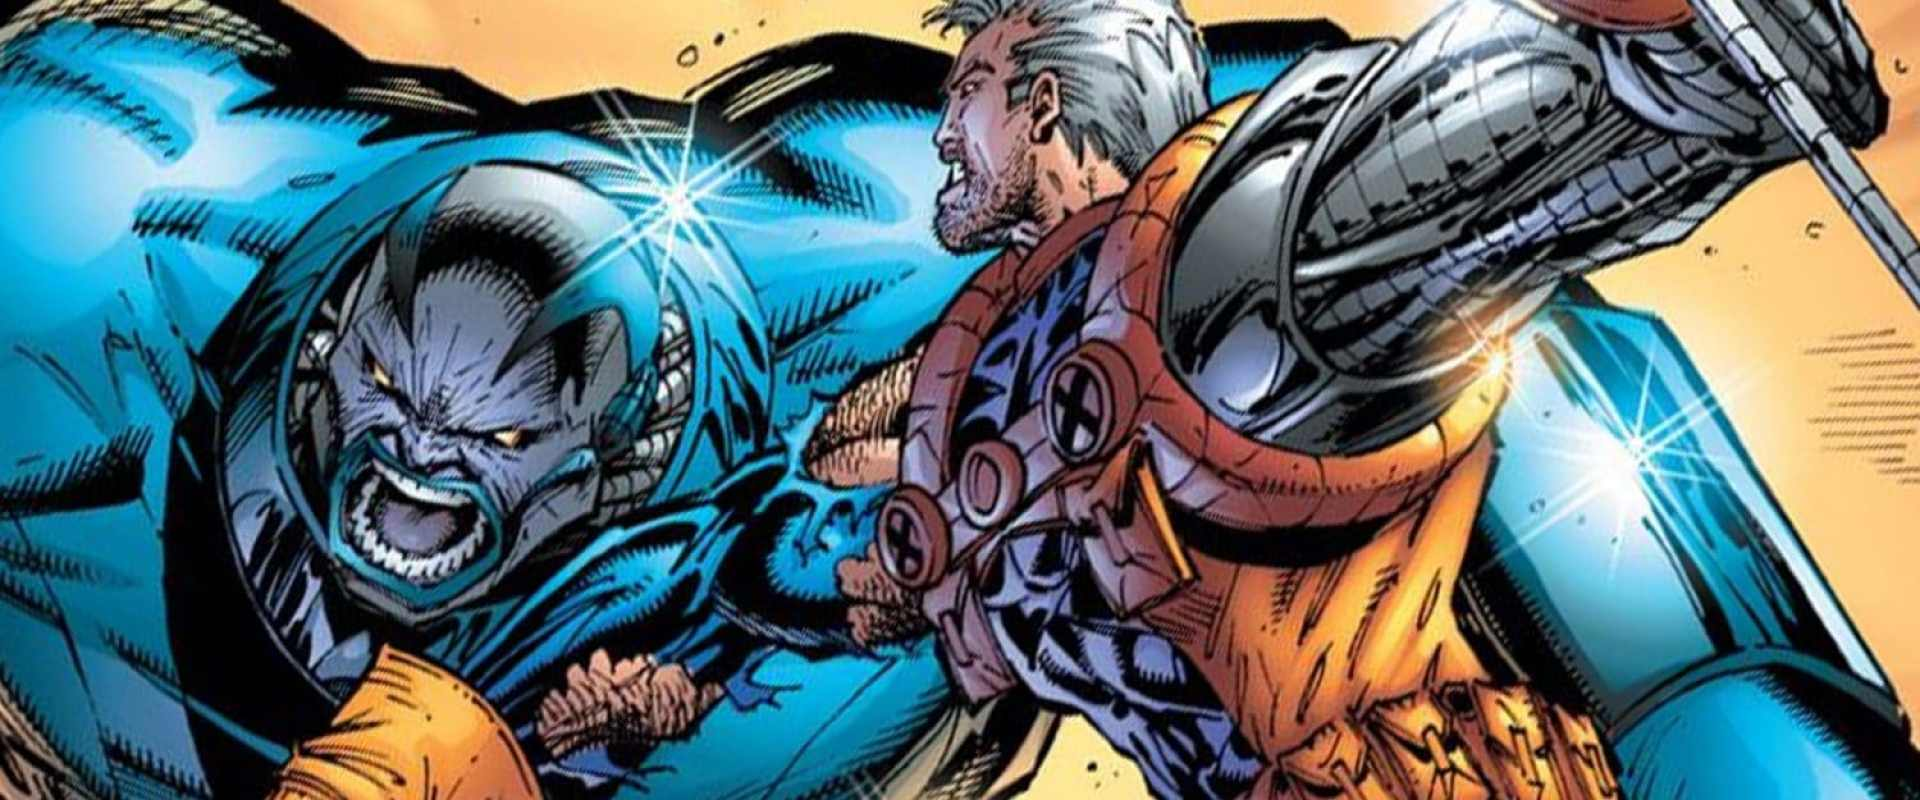 Take a look at the comic book history of Cable, who will be played by Josh Brolin in the Untitled Deadpool sequel.